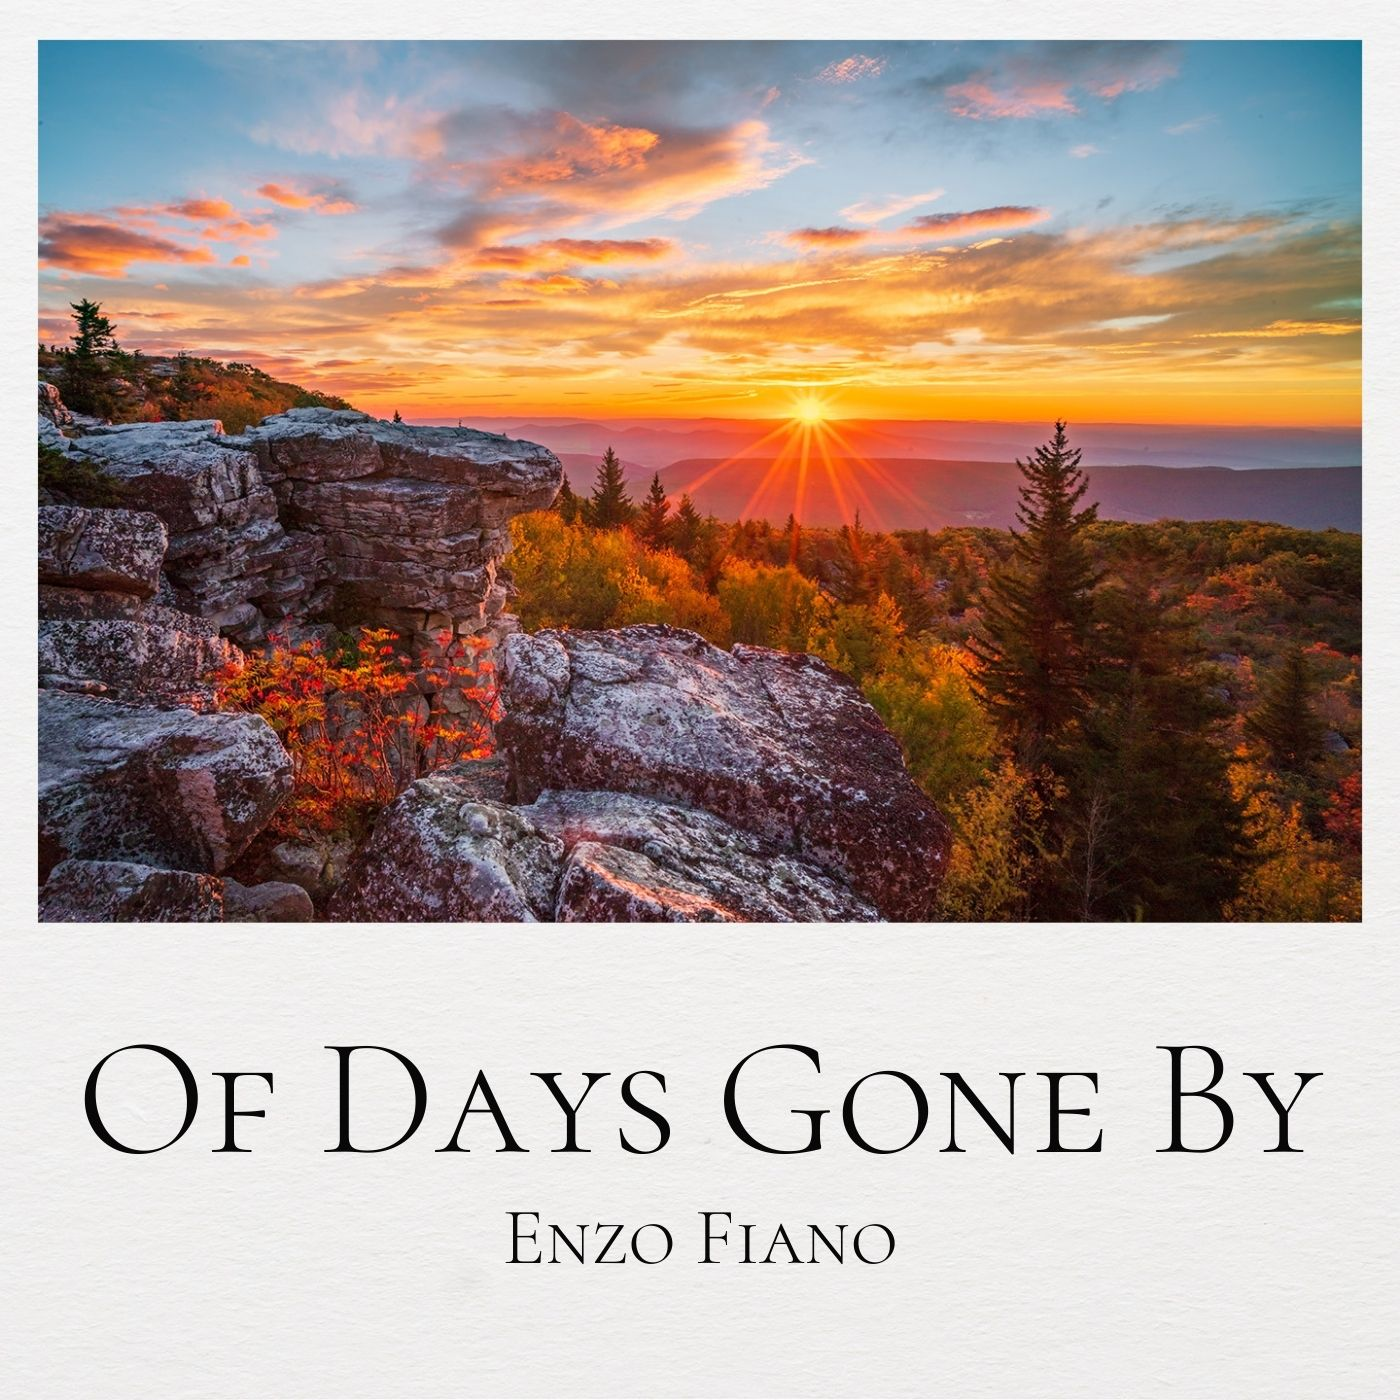 Of Days Gone By